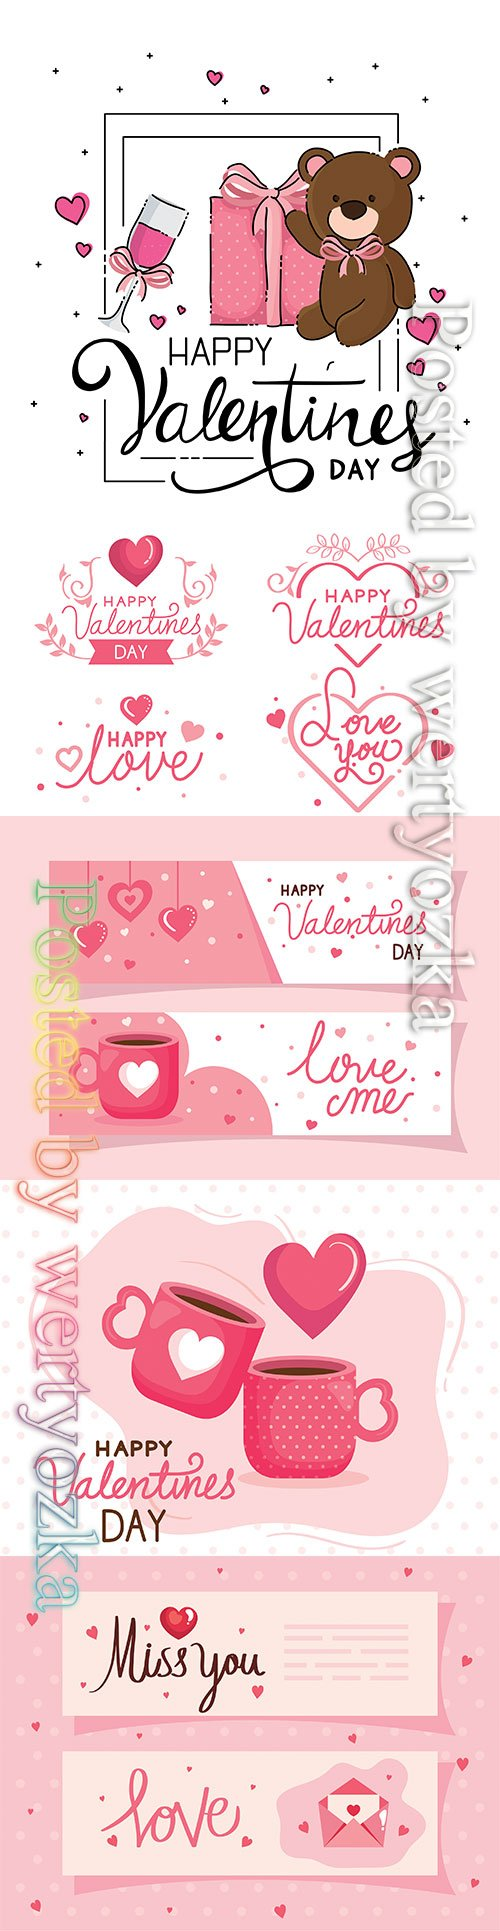 Vector cards of happy valentines day